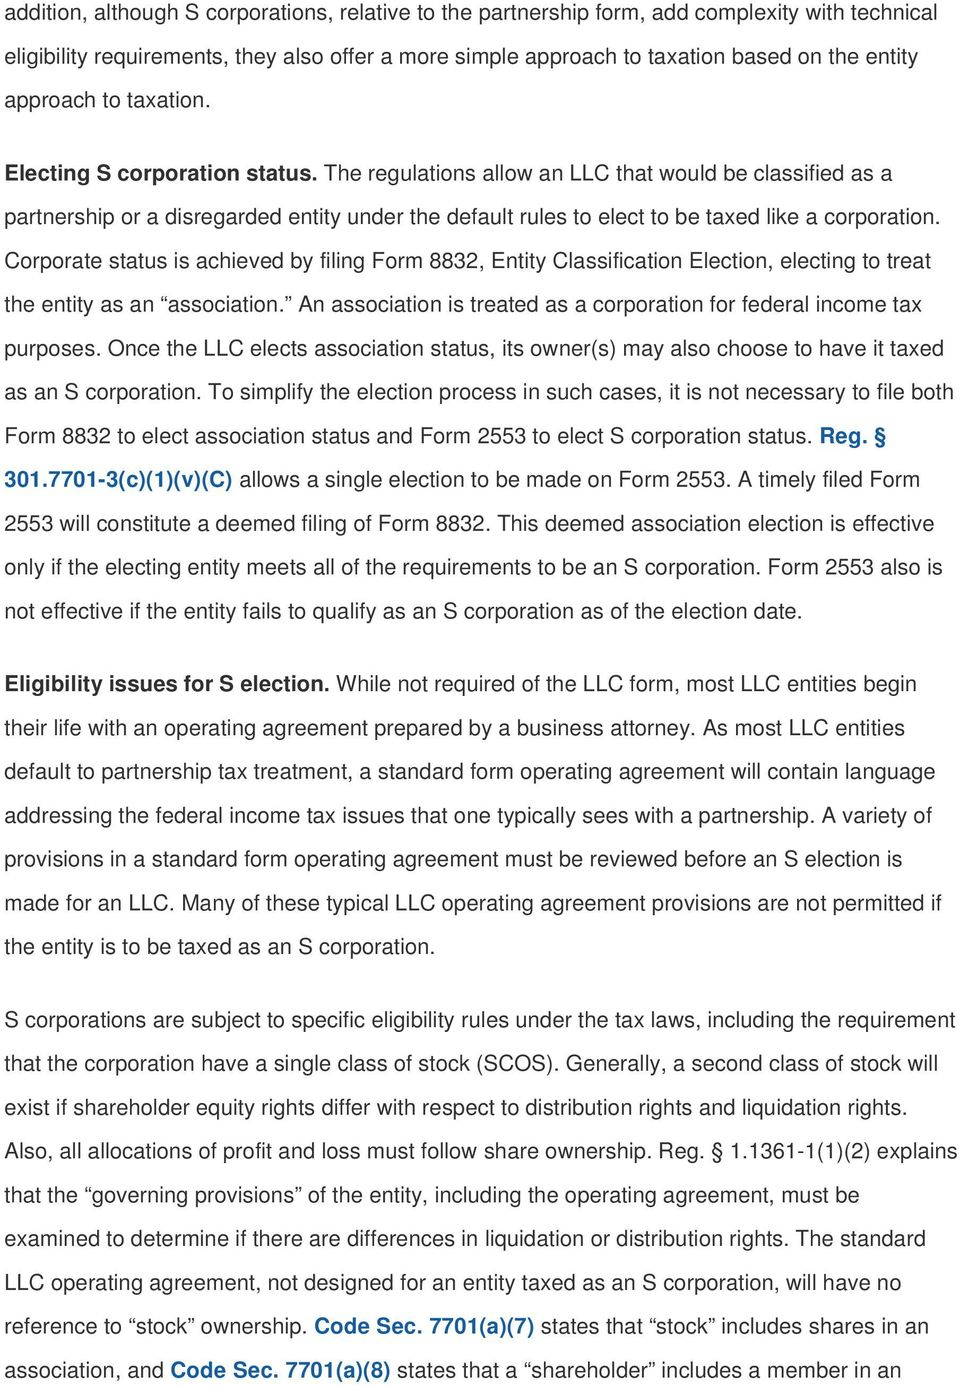 Avoiding traps when electing S corporation status for an LLC - PDF